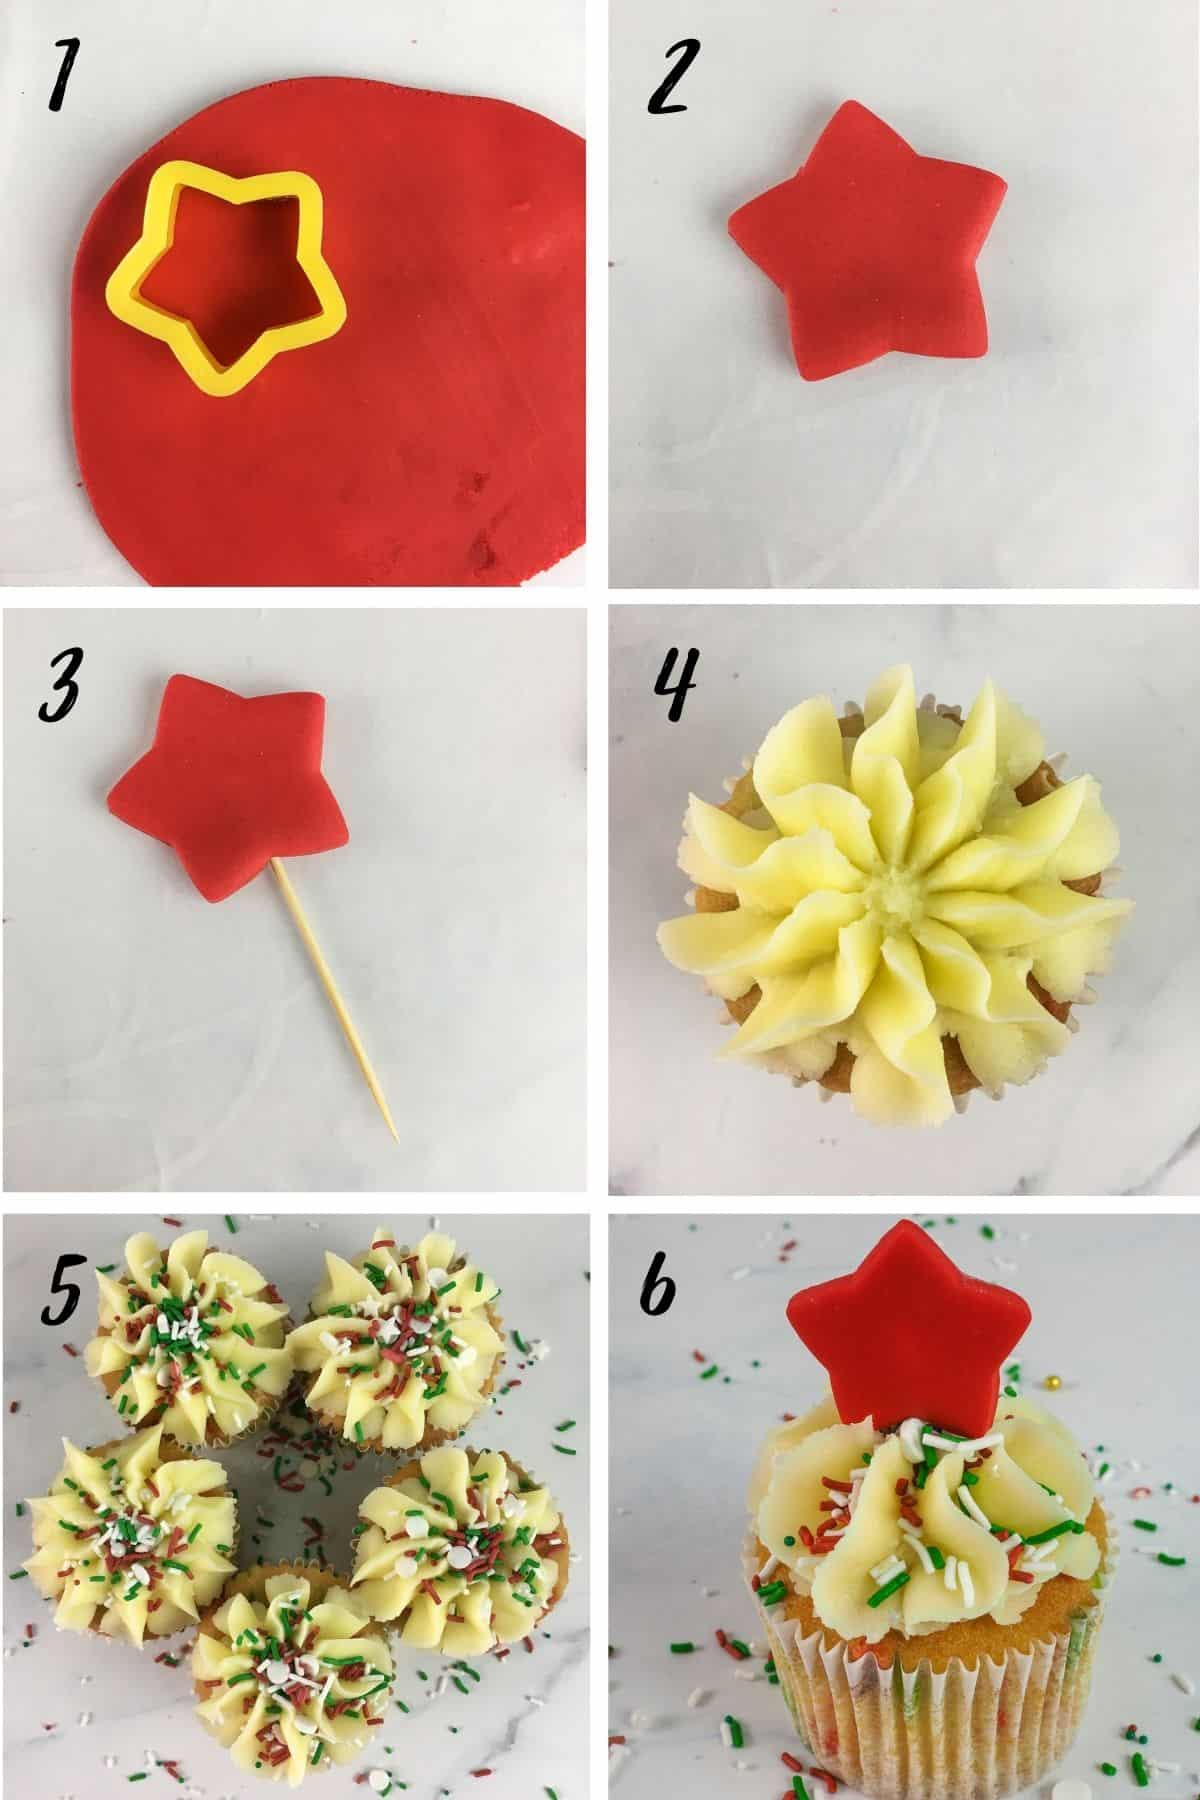 A poster of 6 images show how to make a red fondant star cupcake topper and how to decorate a cupcake with buttercream swirl and sprinkles